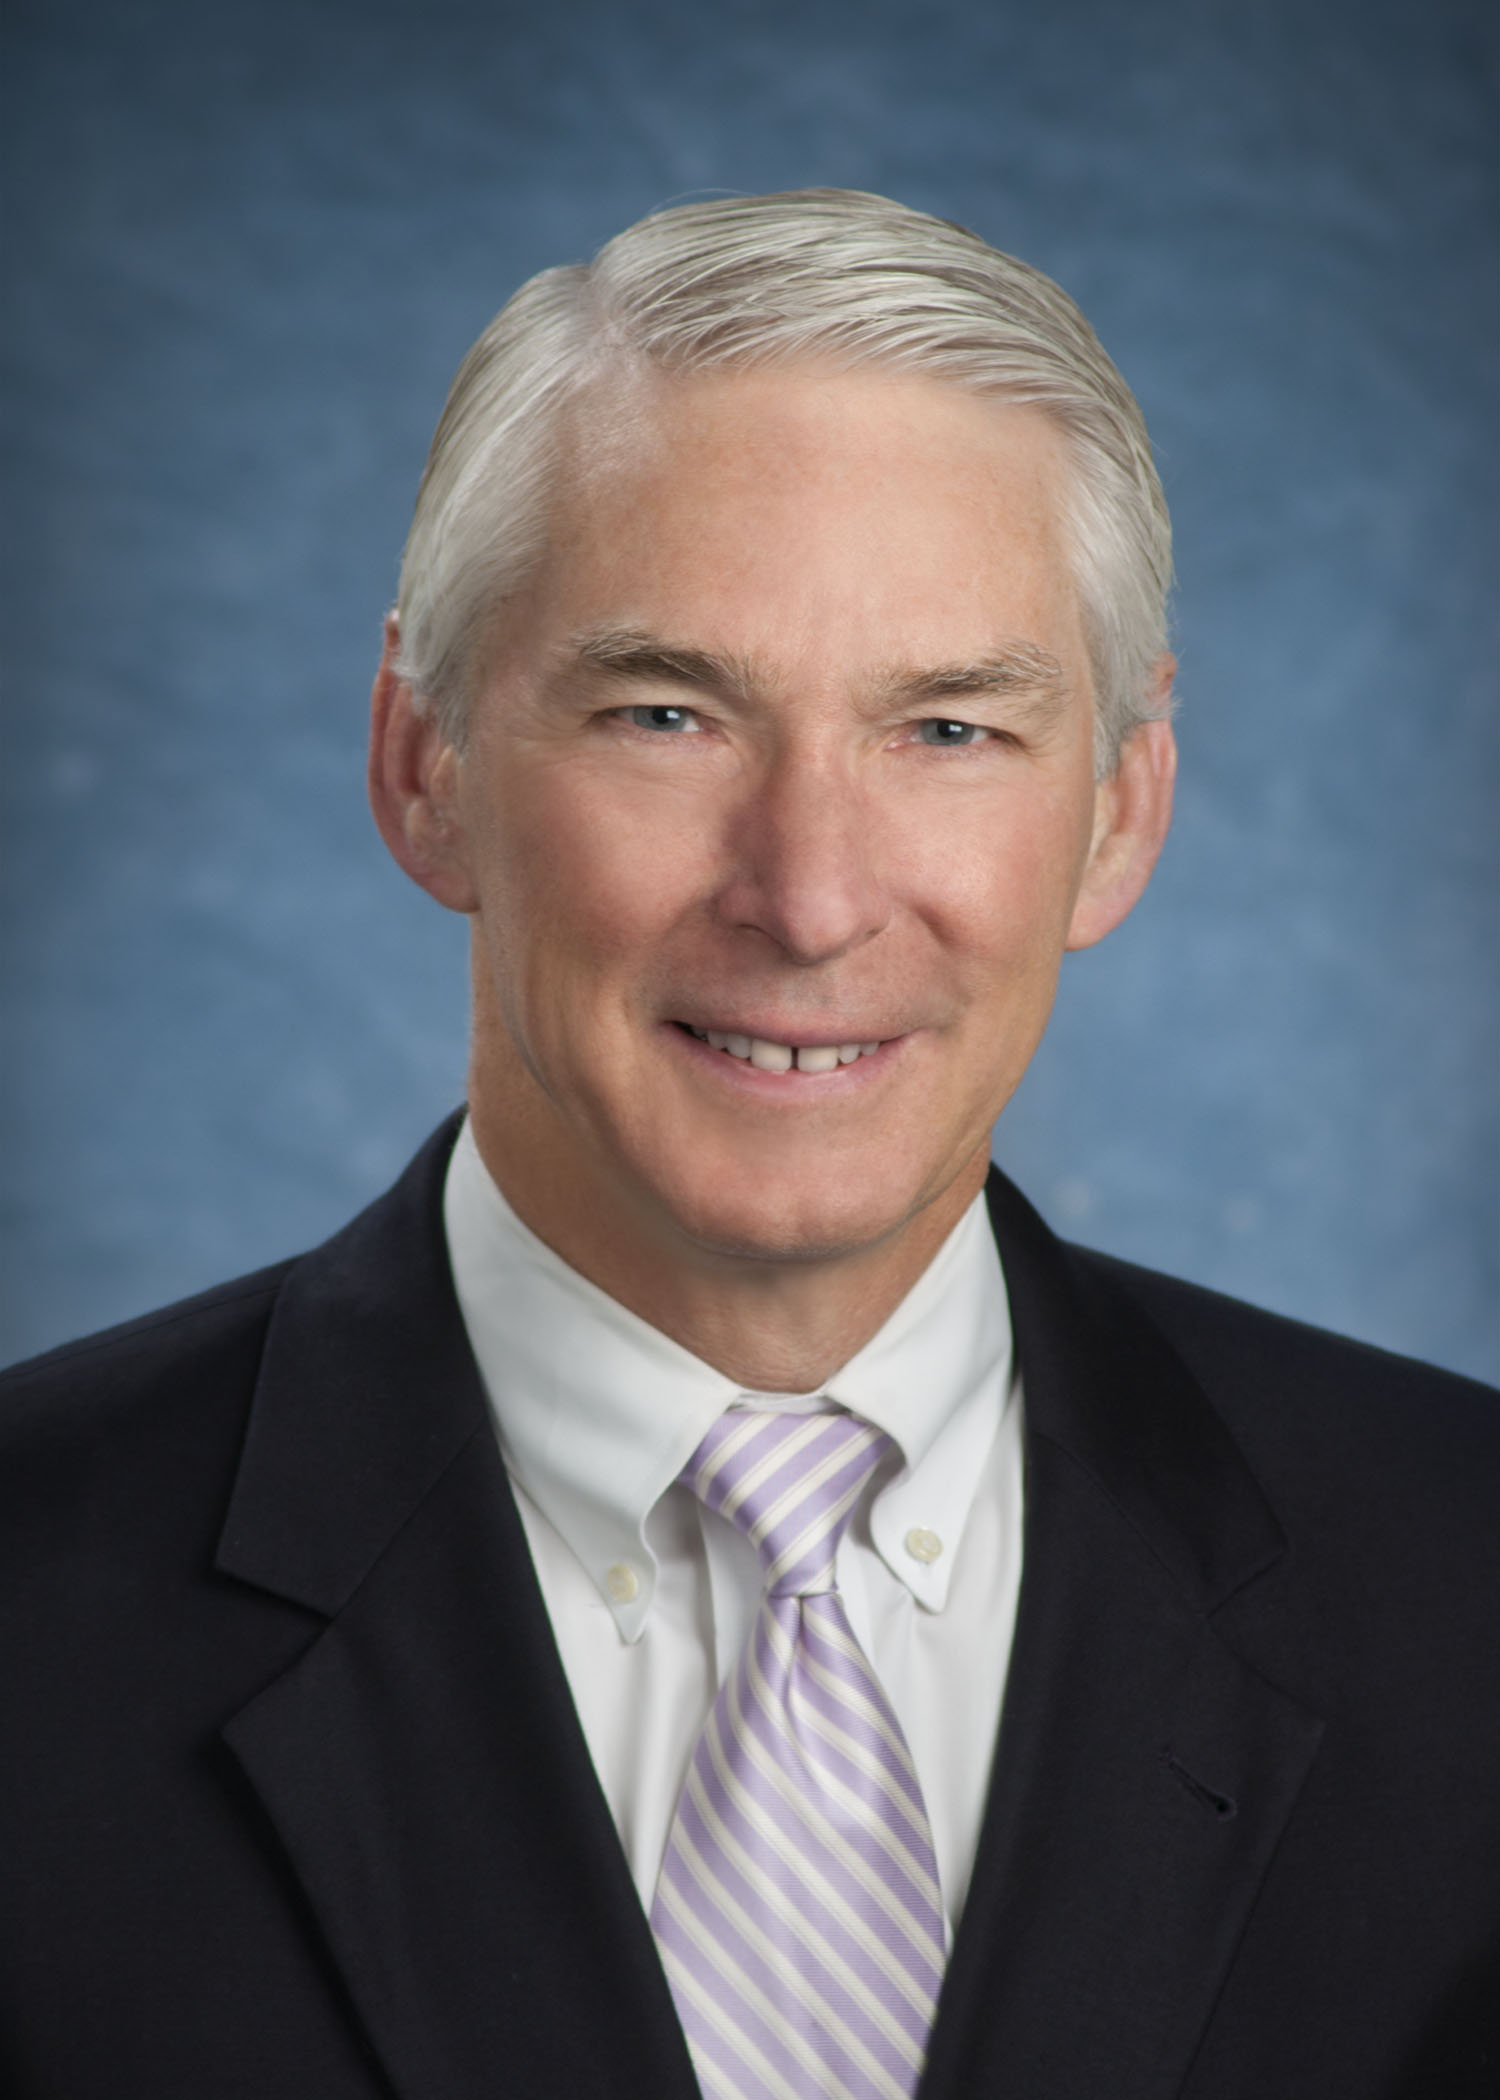 Dr. Stephen Pearce, MD